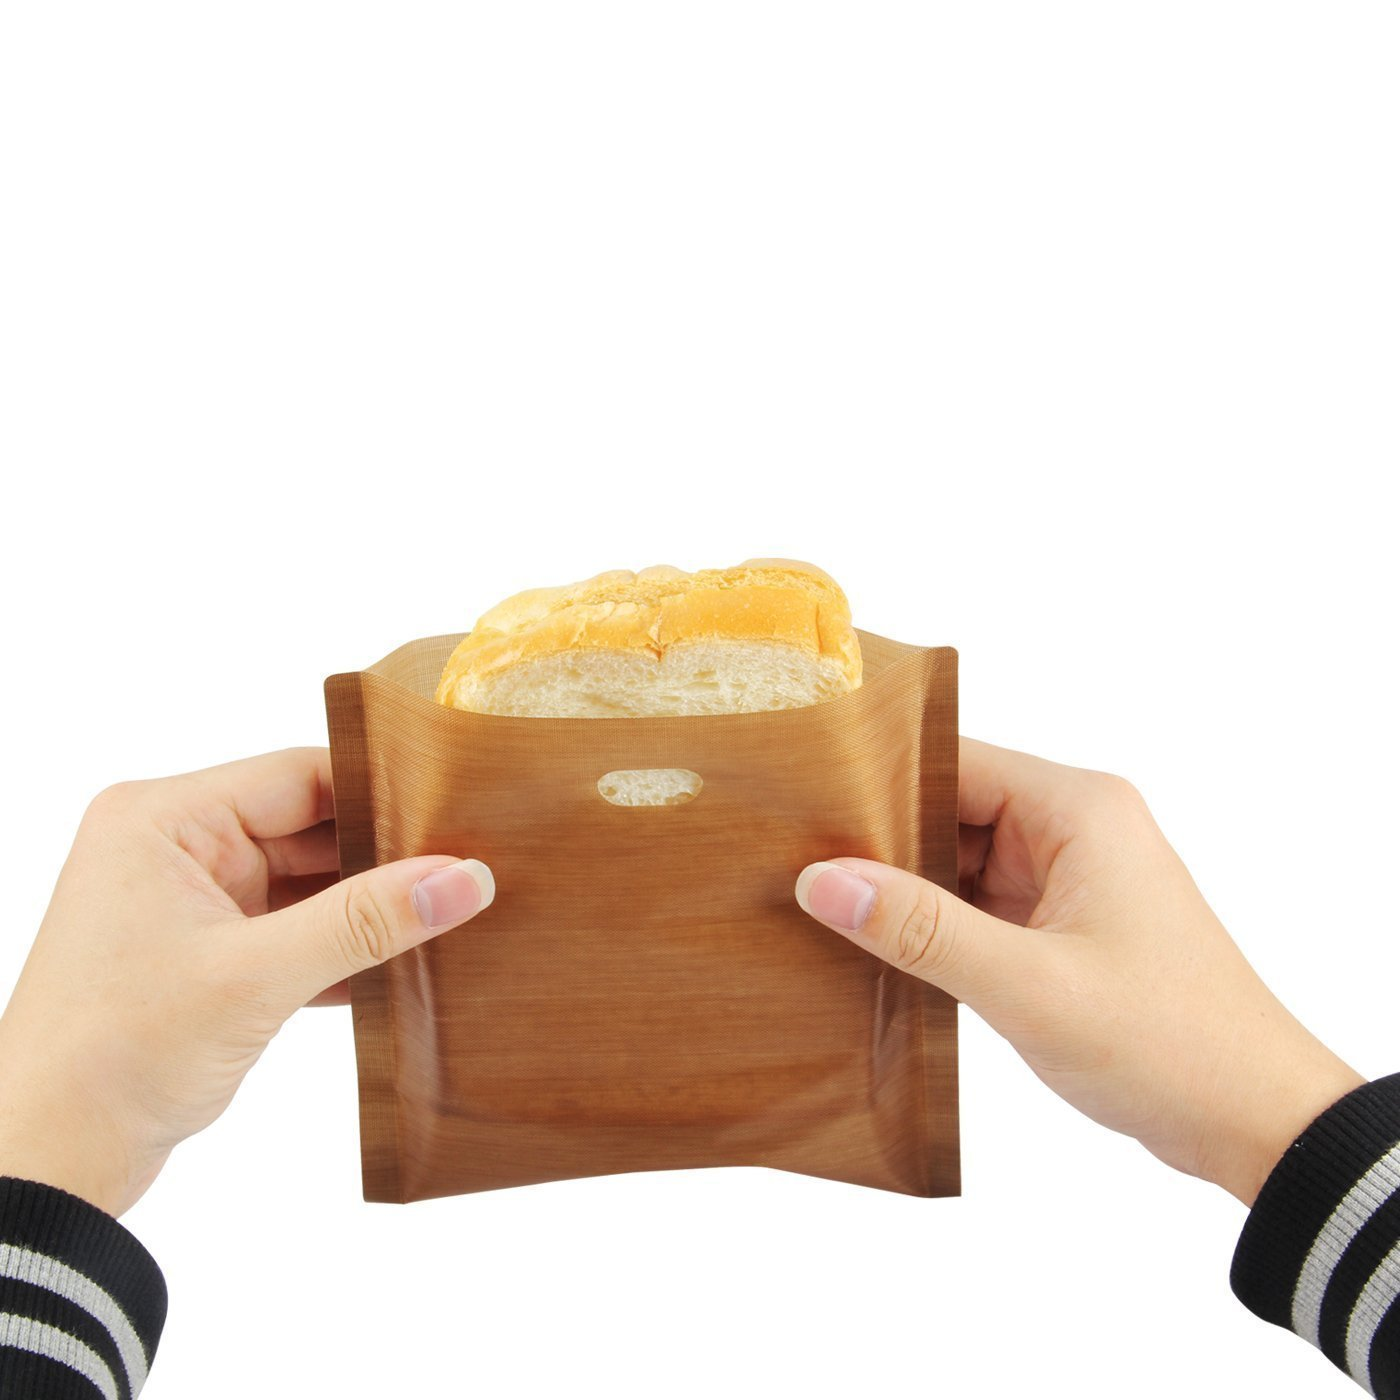 Toaster bags: reusable, non-stick, (6 PACK), durable, grill bags, grilled cheese bags, sandwich bag, easy to use, no mess, Teflon, FDA approved, grill parchment, baking parchment. (''SET Of 6''). by Skiera